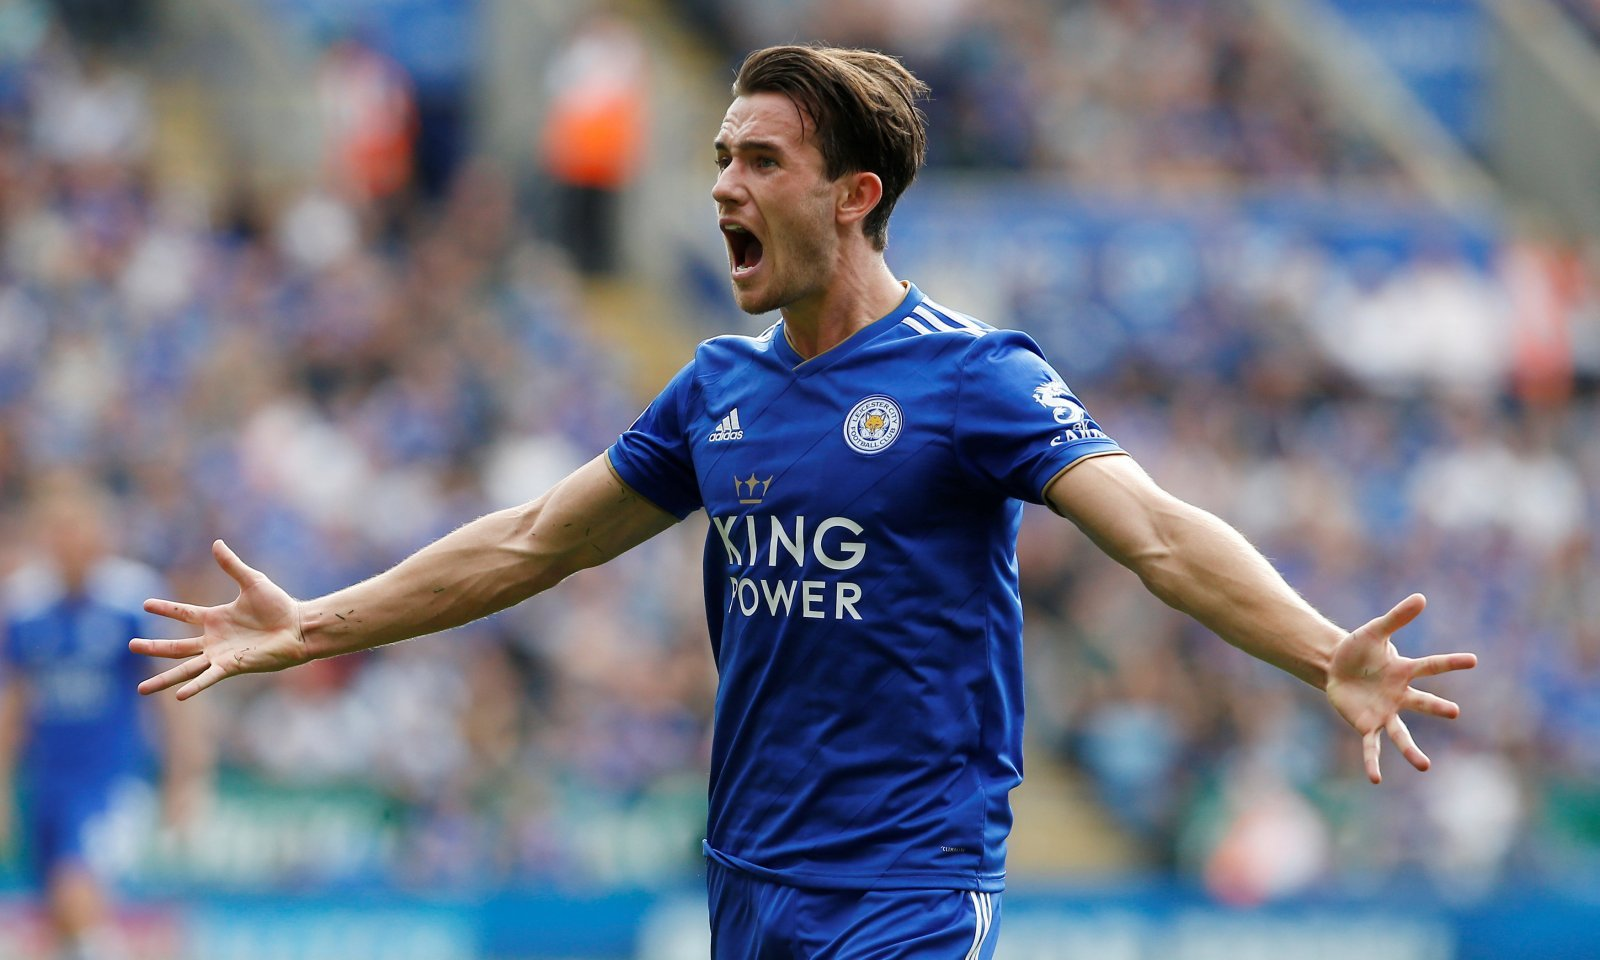 Maddison starred for Leicester, but Ben Chilwell was their unsung hero in Wolves win